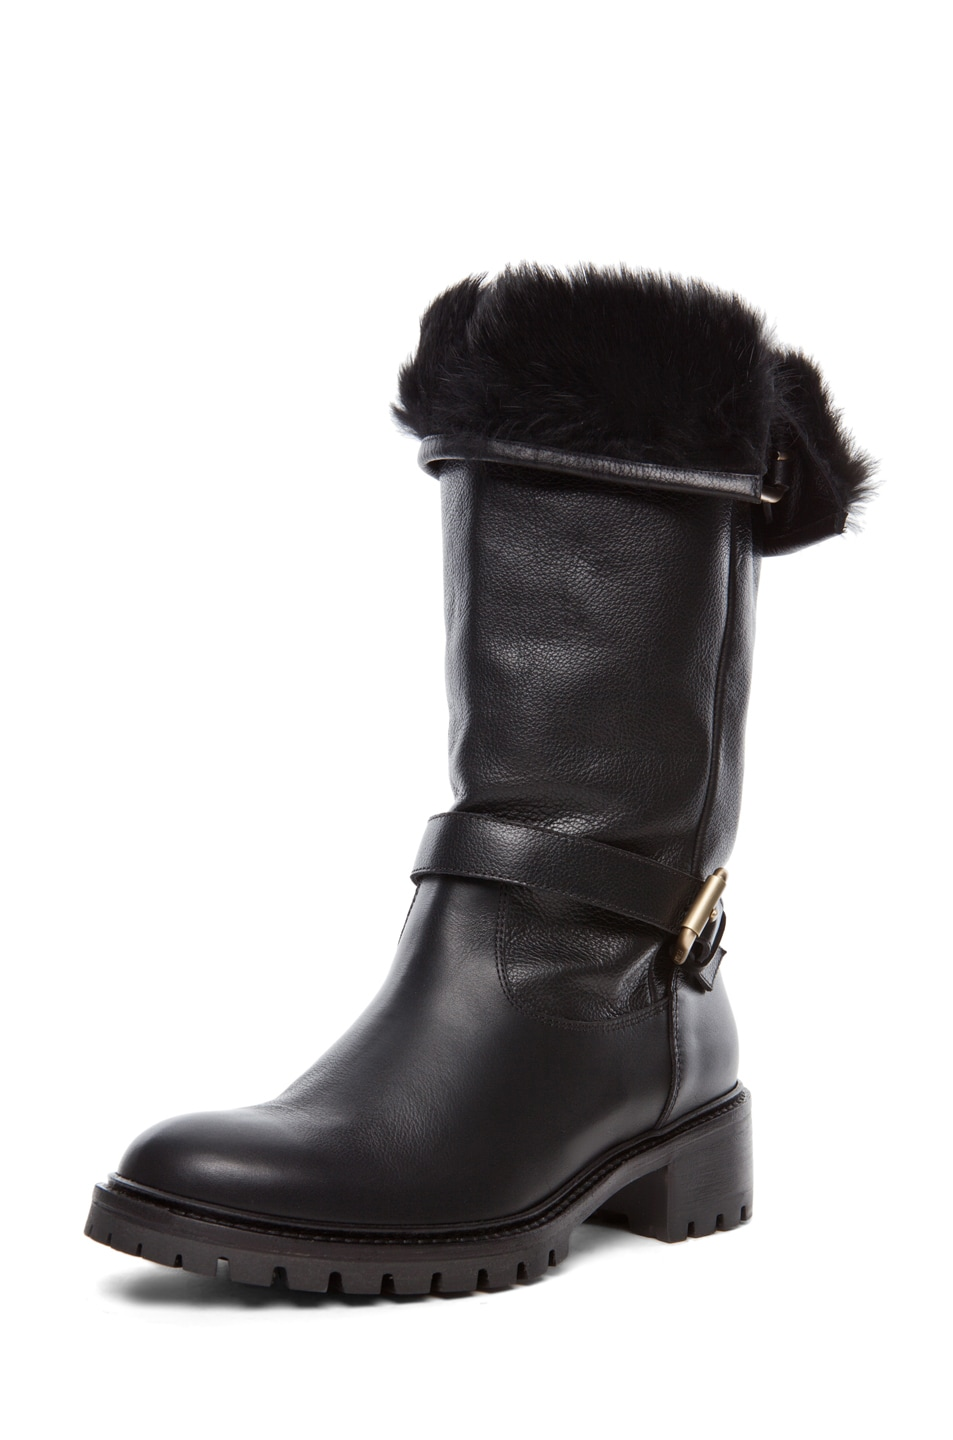 Image 6 of Fendi Military Rabbit Fur Lined Boot in Black